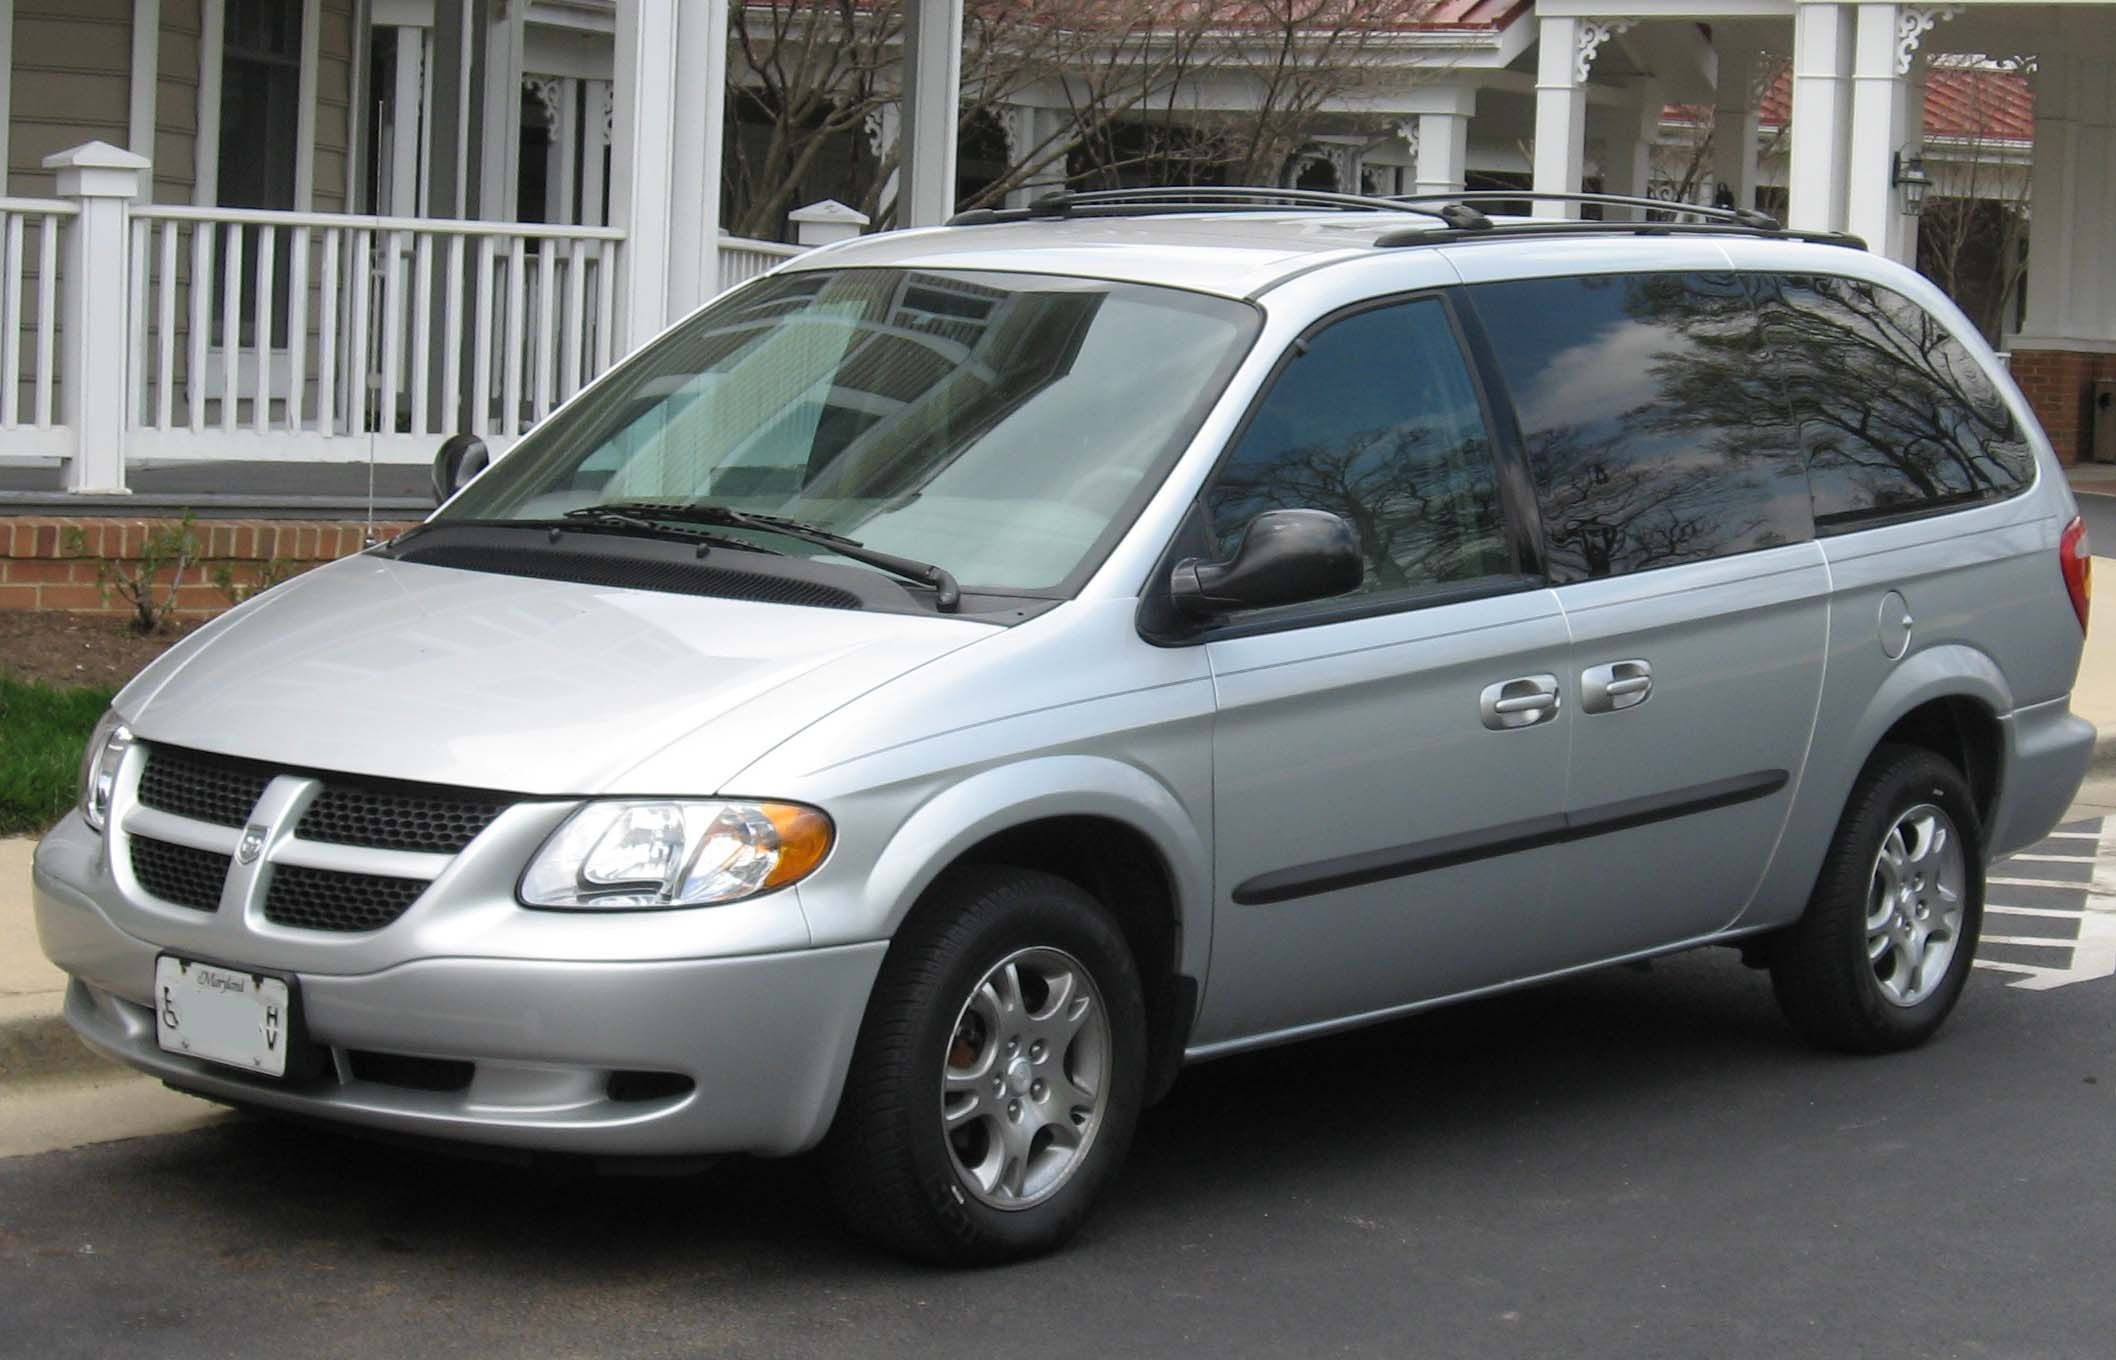 2004 Dodge Caravan - bought this when I retired from teaching and went into  trade show rep job.